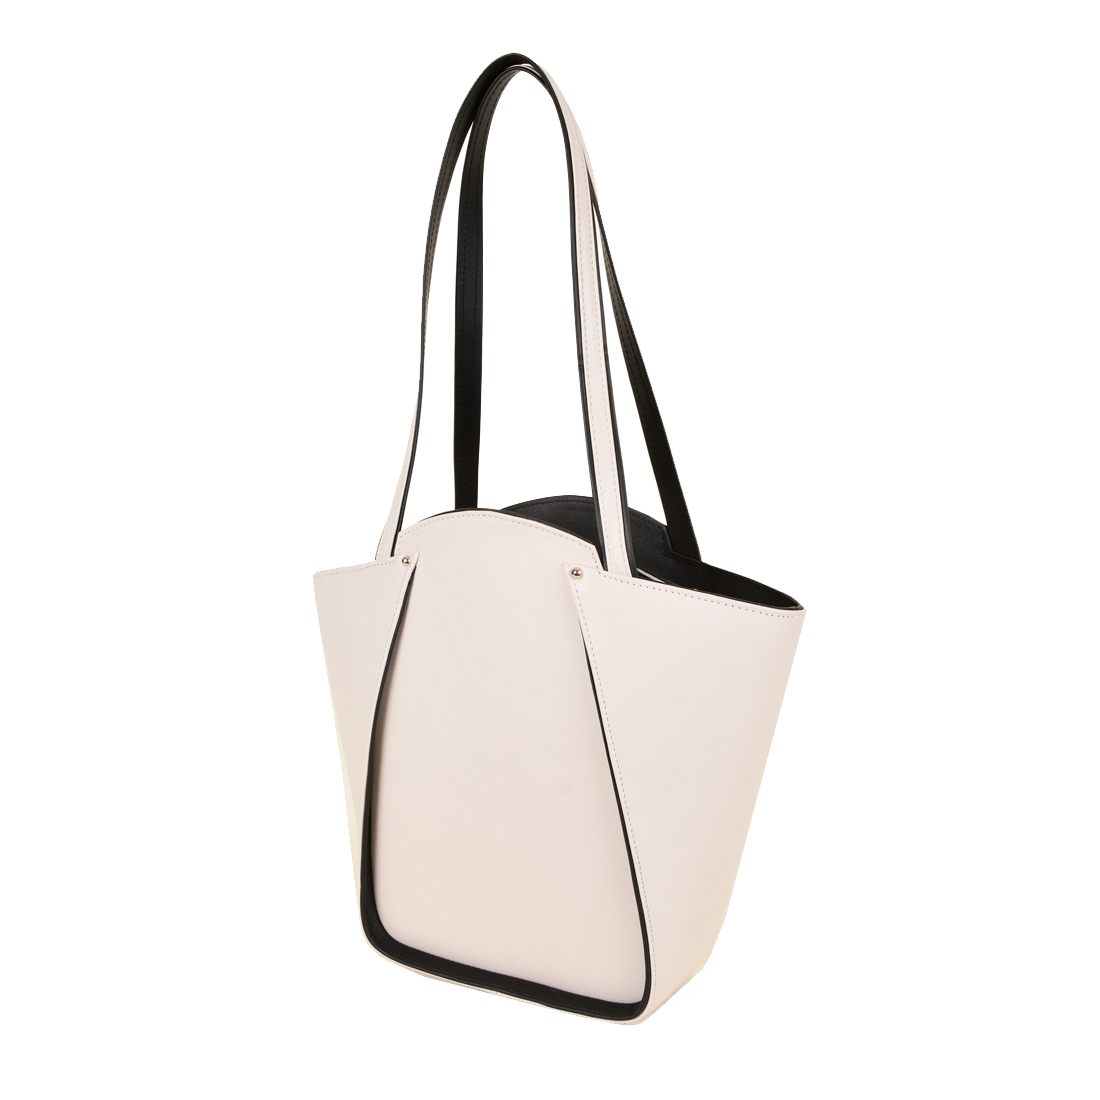 Greta Polvere Structured Leather Shoulder Bag